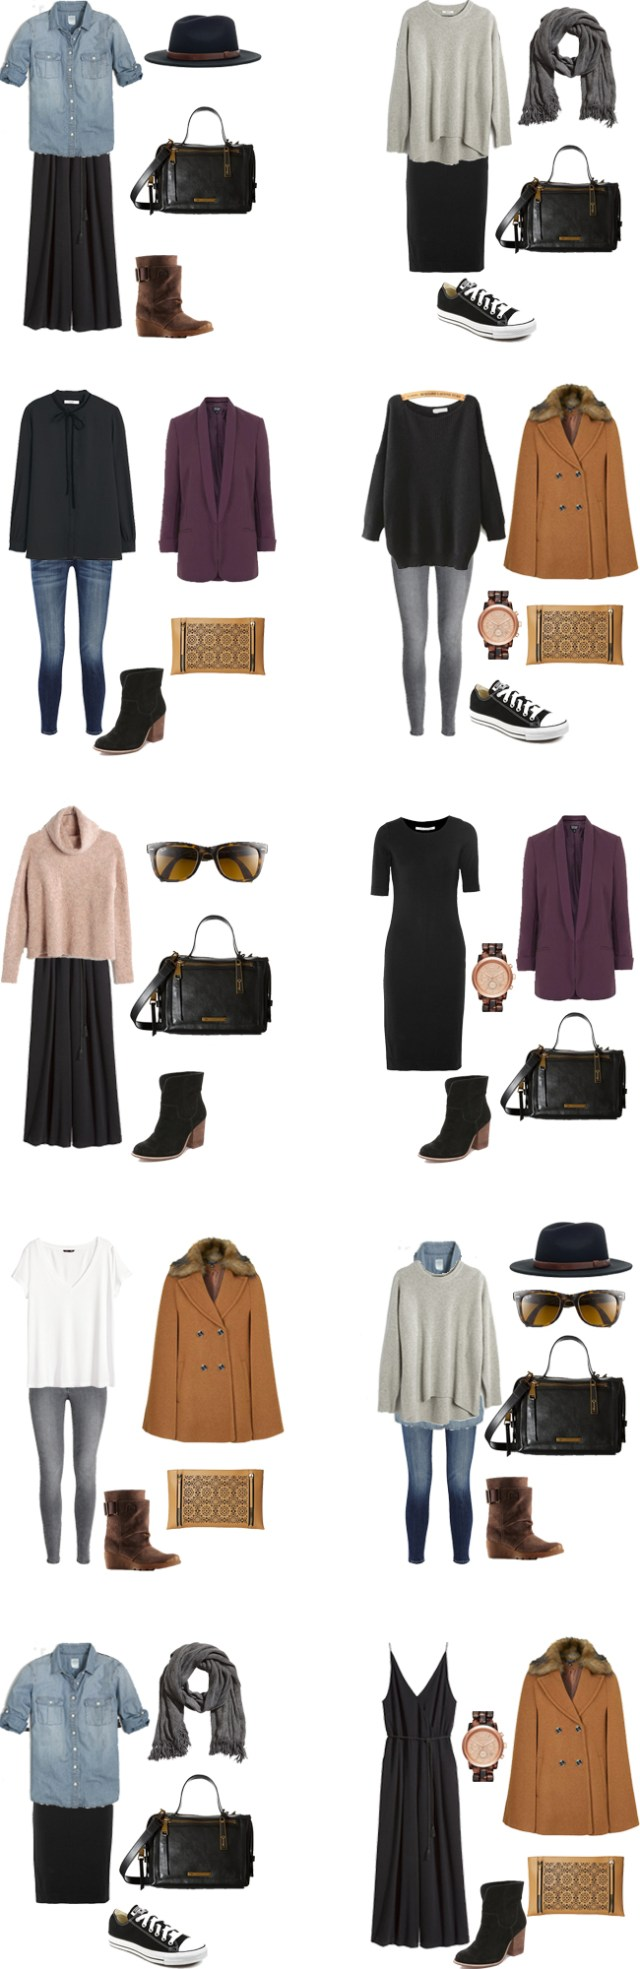 What to Wear in Salzburg Austria Outfit Options 11-20 #packinglight #packinglist #travellight #traveltips #whattowear